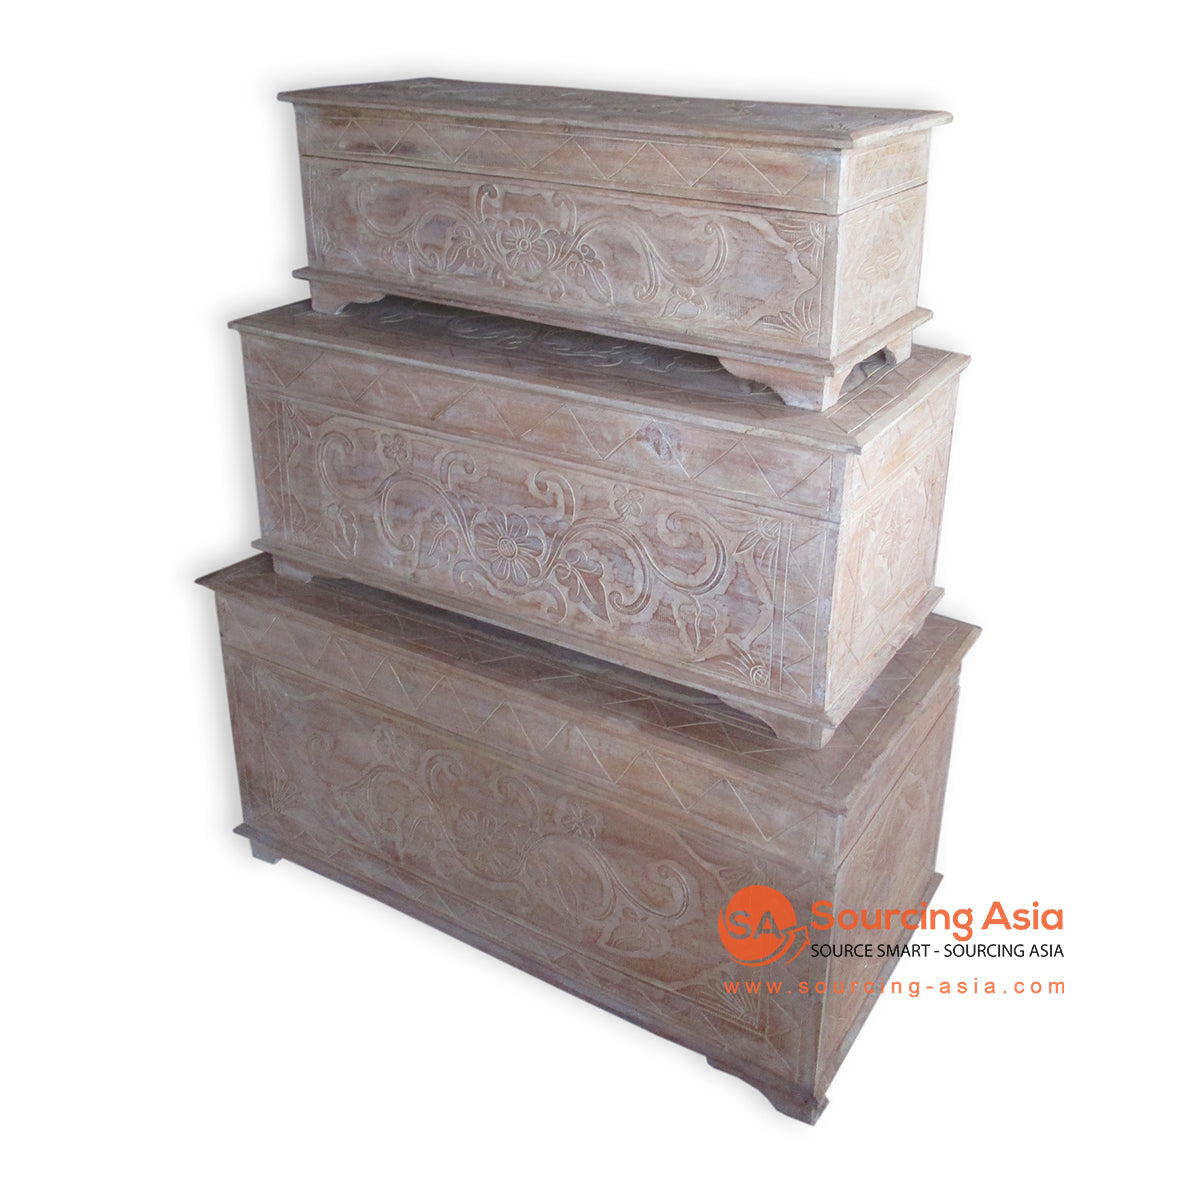 THE145BW-100 SET OF 3 CARVED WOODEN BOXES